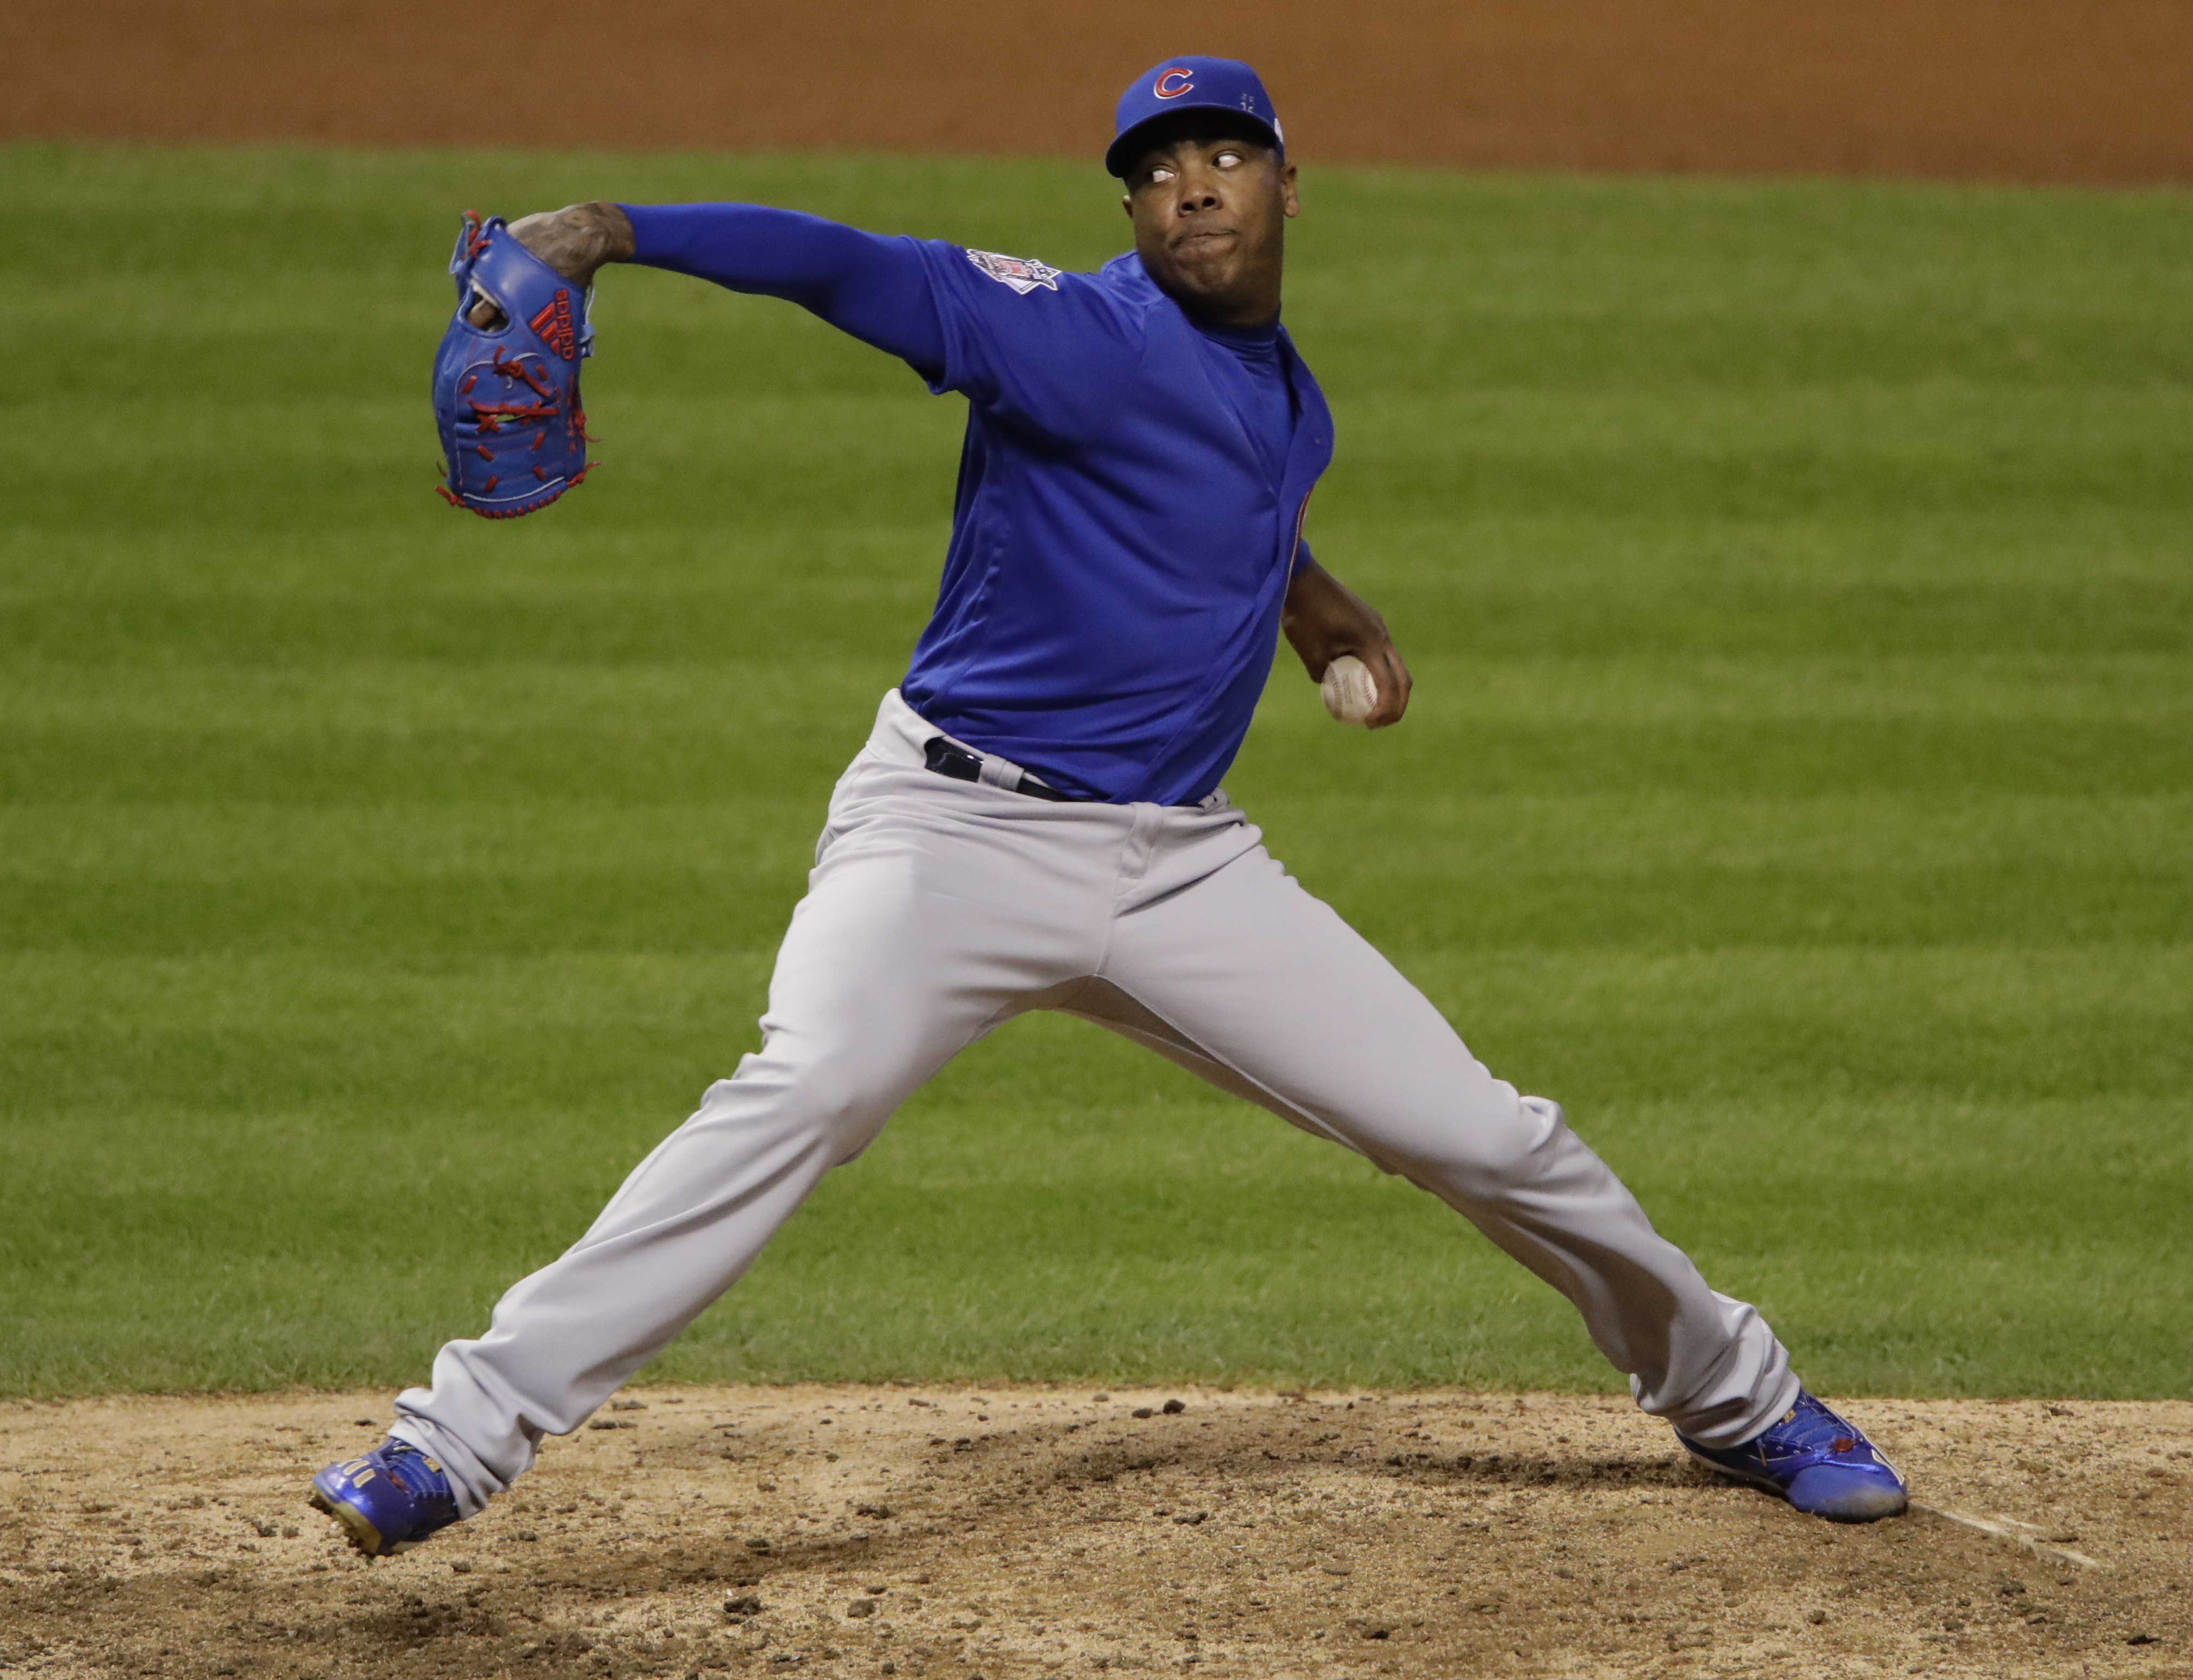 Chicago Cubs relief pitcher Aroldis Chapman throws during the seventh inning of Game 6 of the Major League Baseball World Series against the Cleveland Indians Tuesday, Nov. 1, 2016, in Cleveland. (AP Photo/Gene J. Puskar)